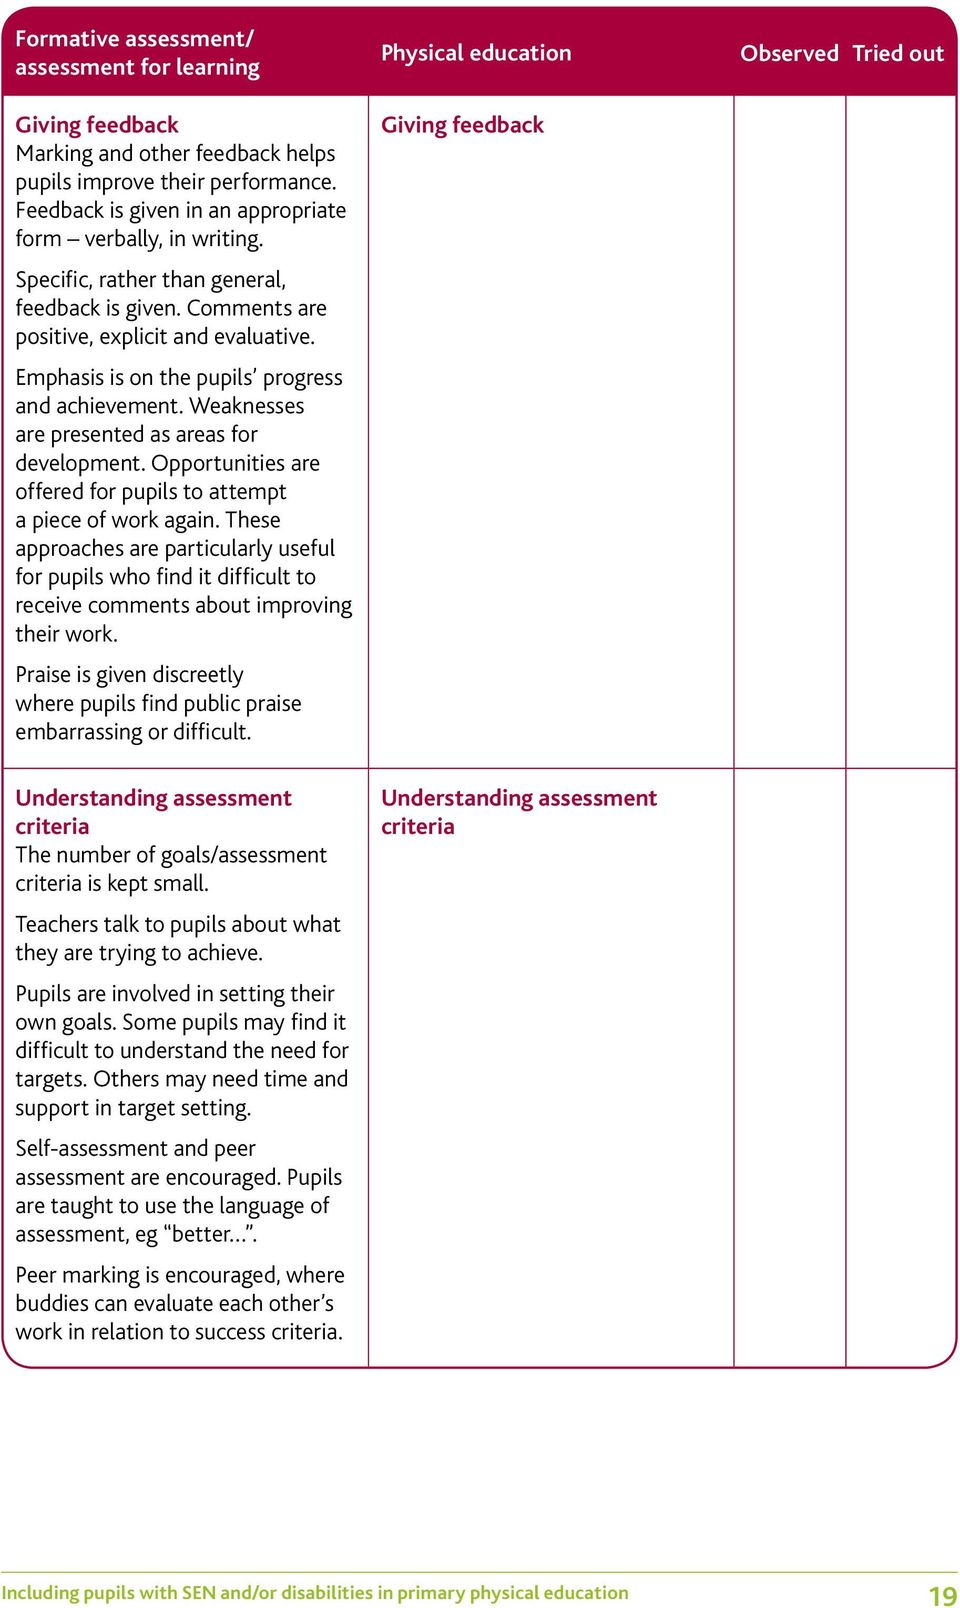 Opportunities are offered for pupils to attempt a piece of work again. These approaches are particularly useful for pupils who find it difficult to receive comments about improving their work.